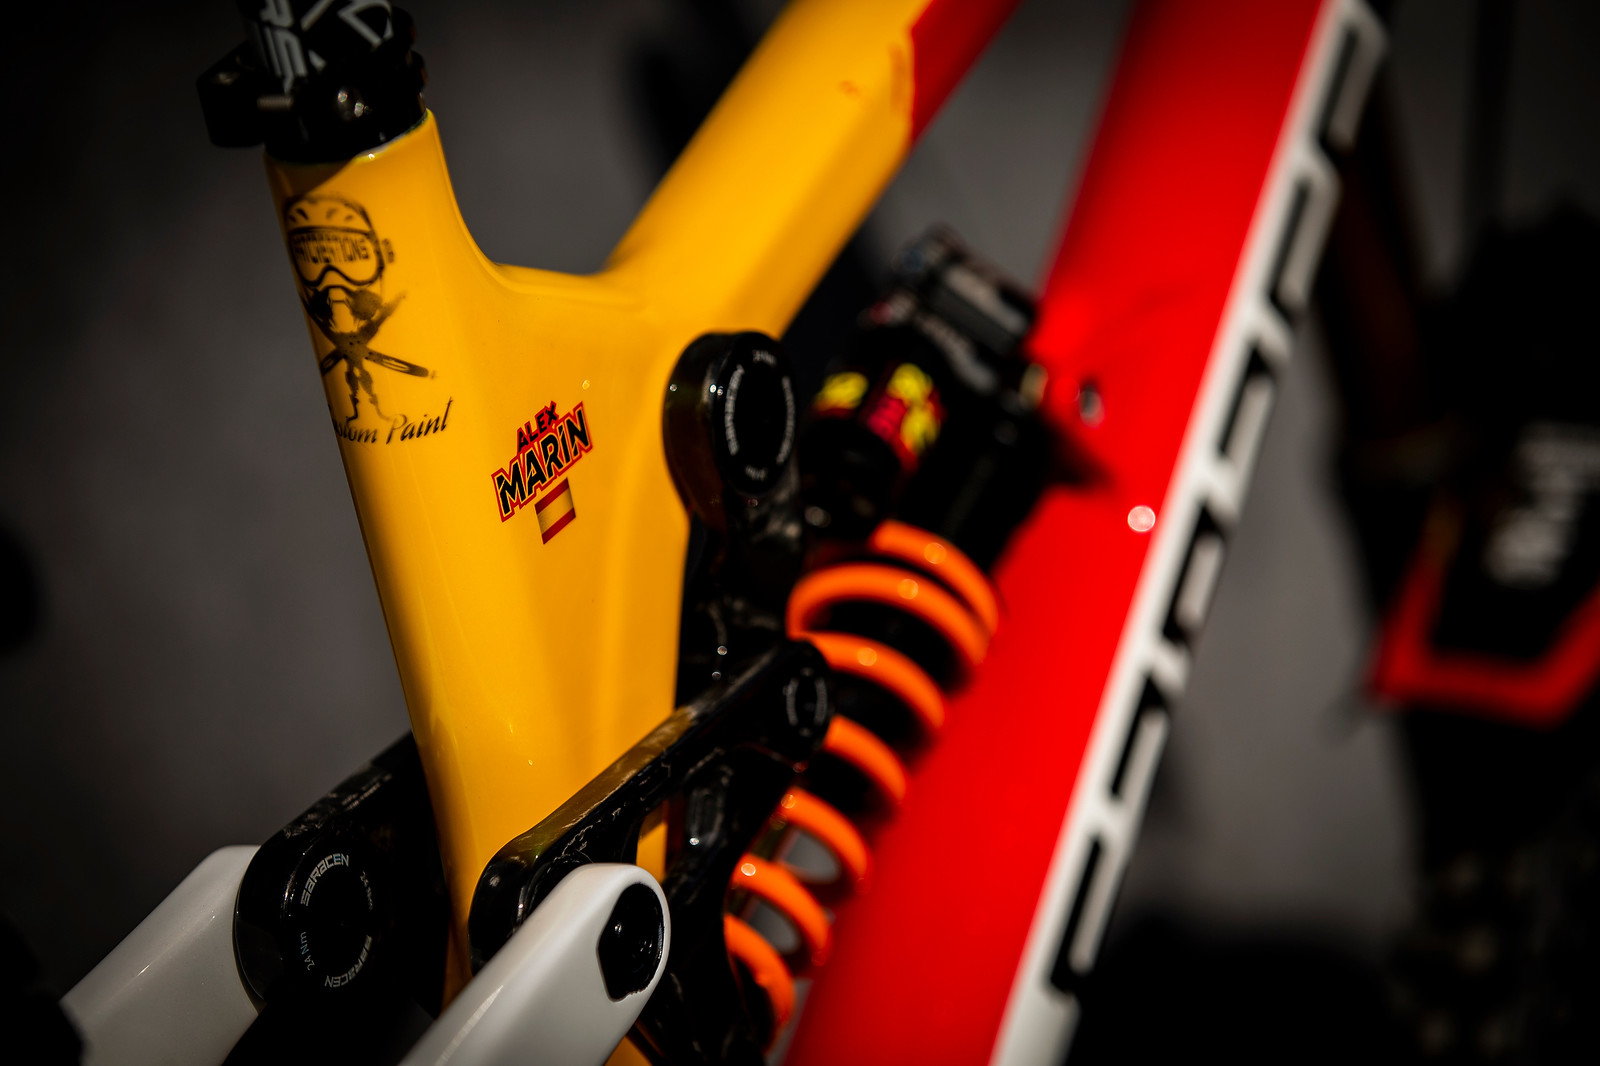 Sunny Goodness - WORLD CHAMPS BIKE - Alex Marin's Saracen Myst - Mountain Biking Pictures - Vital MTB